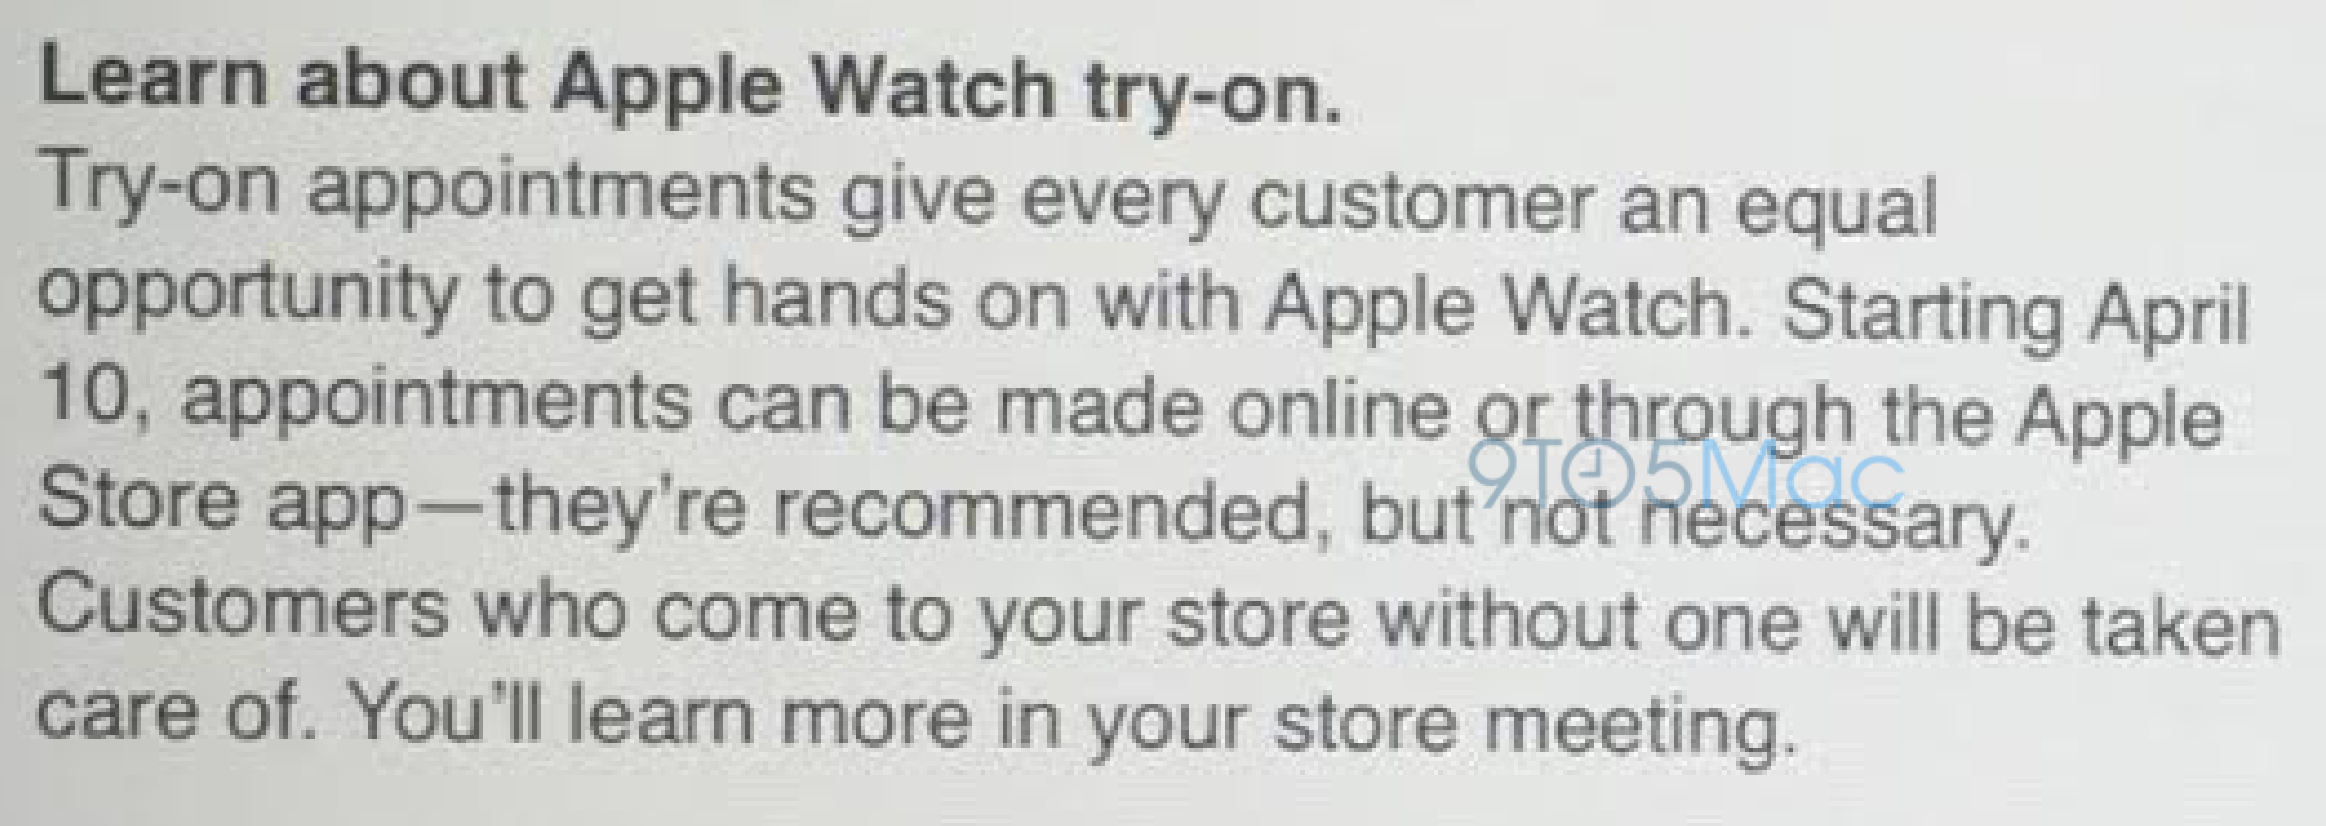 Apple Watch try-on appointments notice